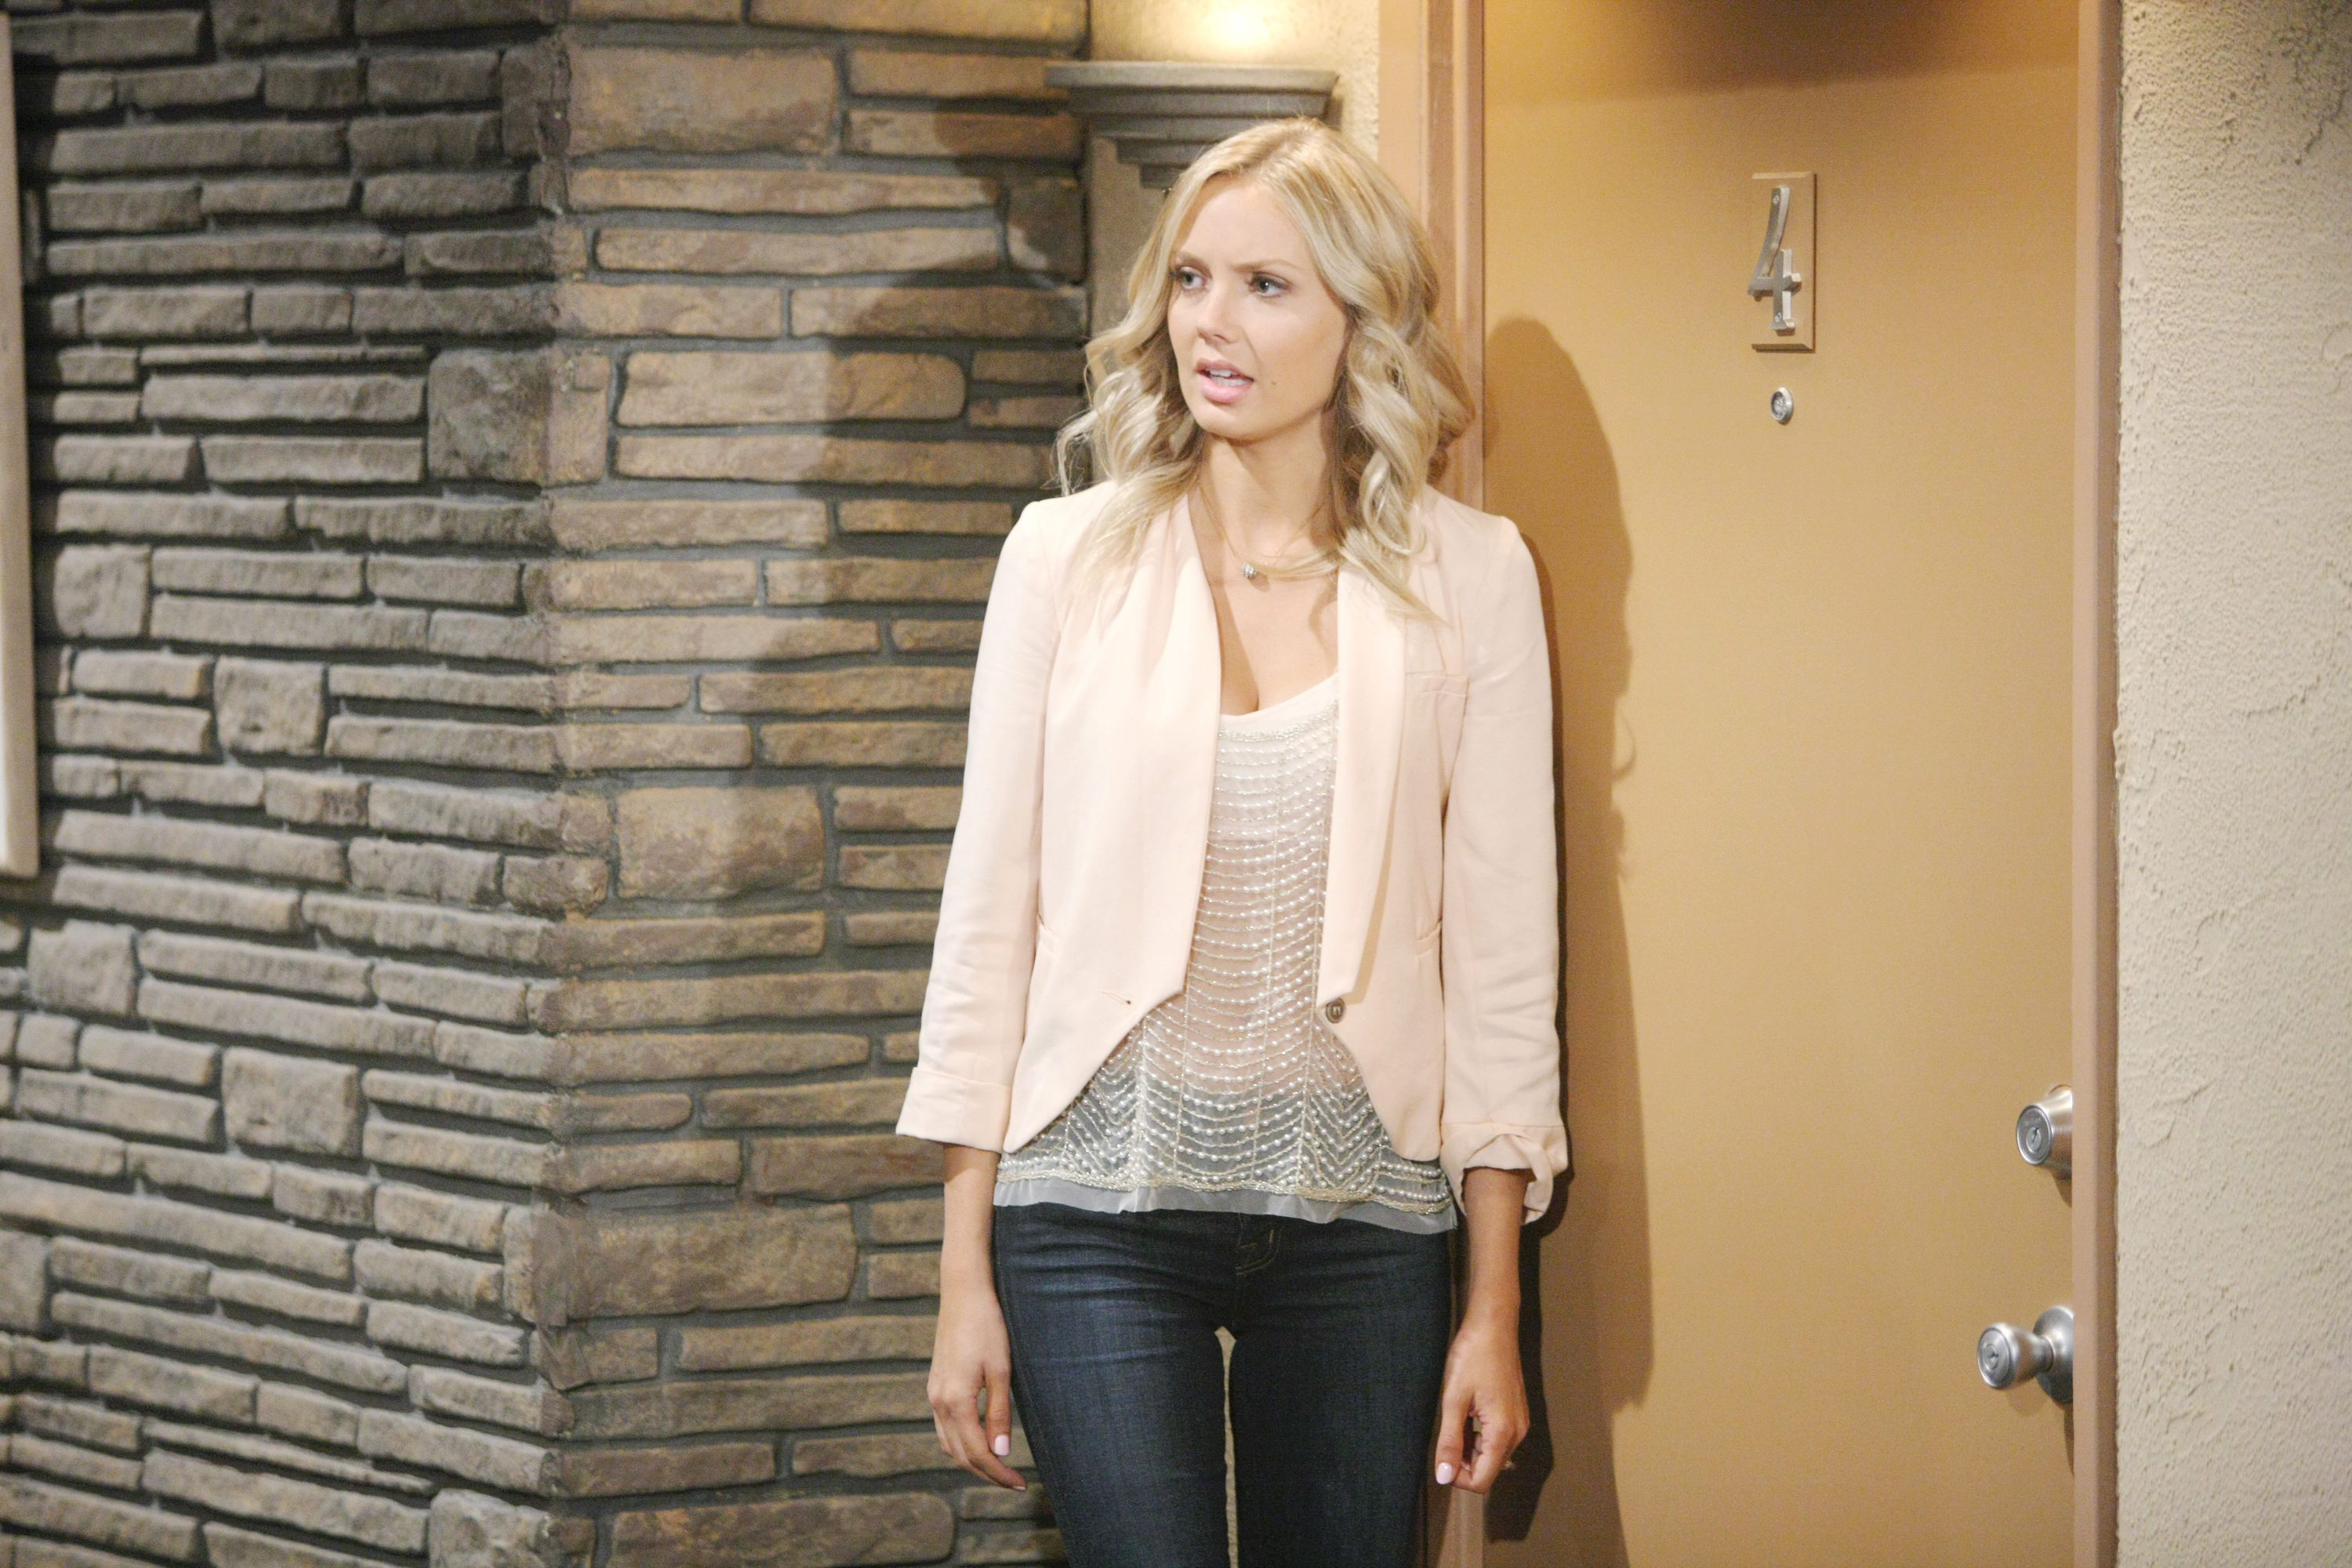 Abby pairs this sheer-pink top and blazer with her baby blues.